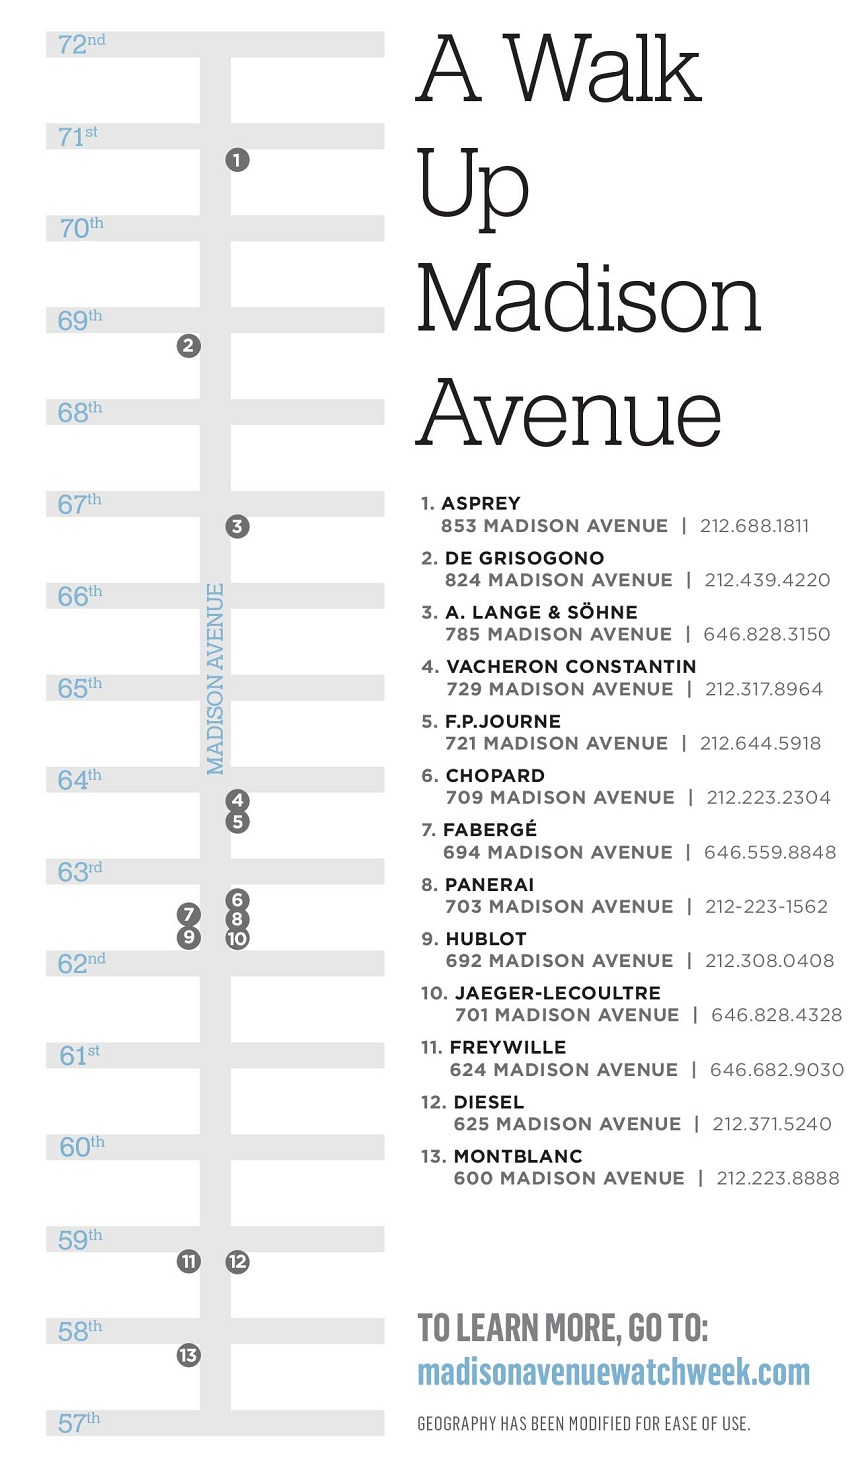 6th Annual Madison Avenue Watch Week April 13-20, 2016 Shows & Events